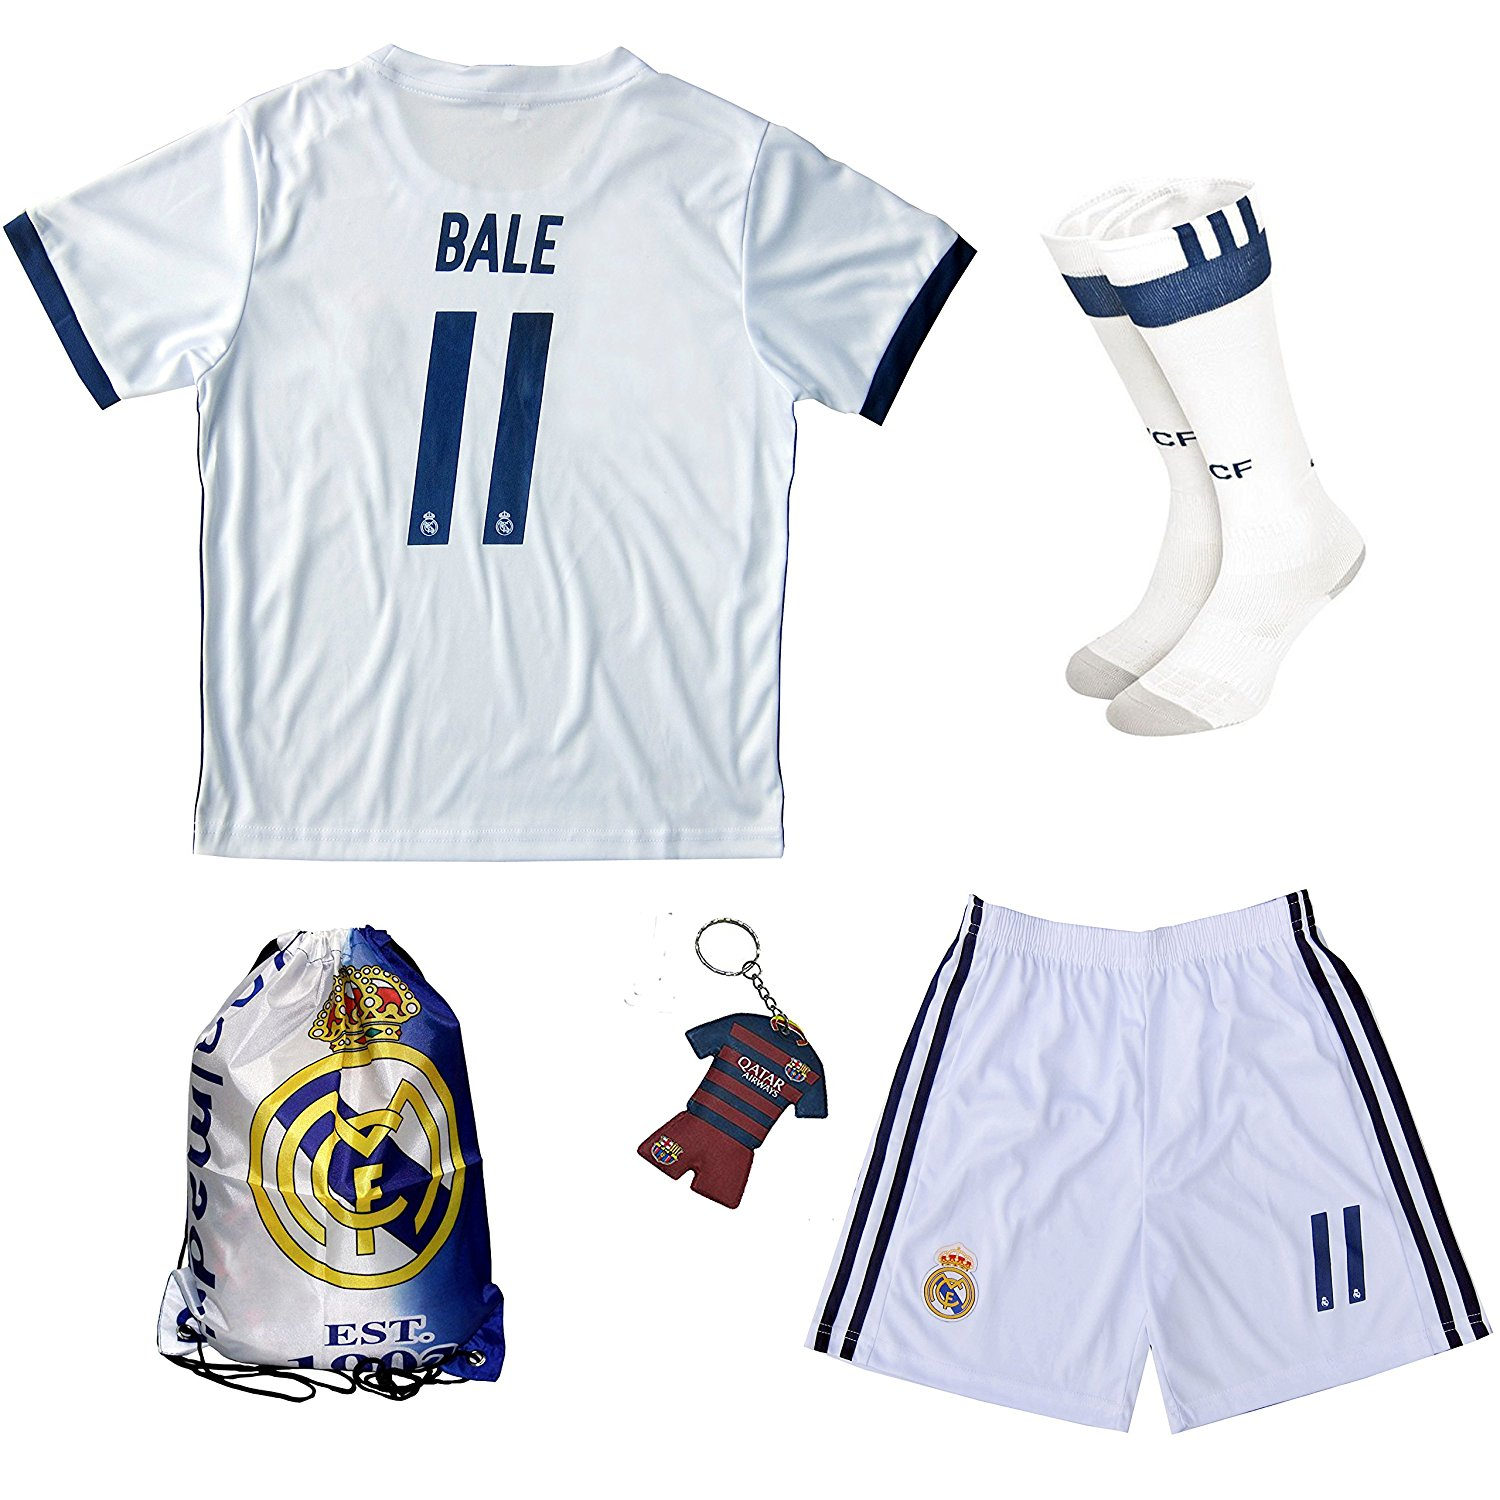 buy online df751 b5912 Cheap Bale Soccer Jersey, find Bale Soccer Jersey deals on ...